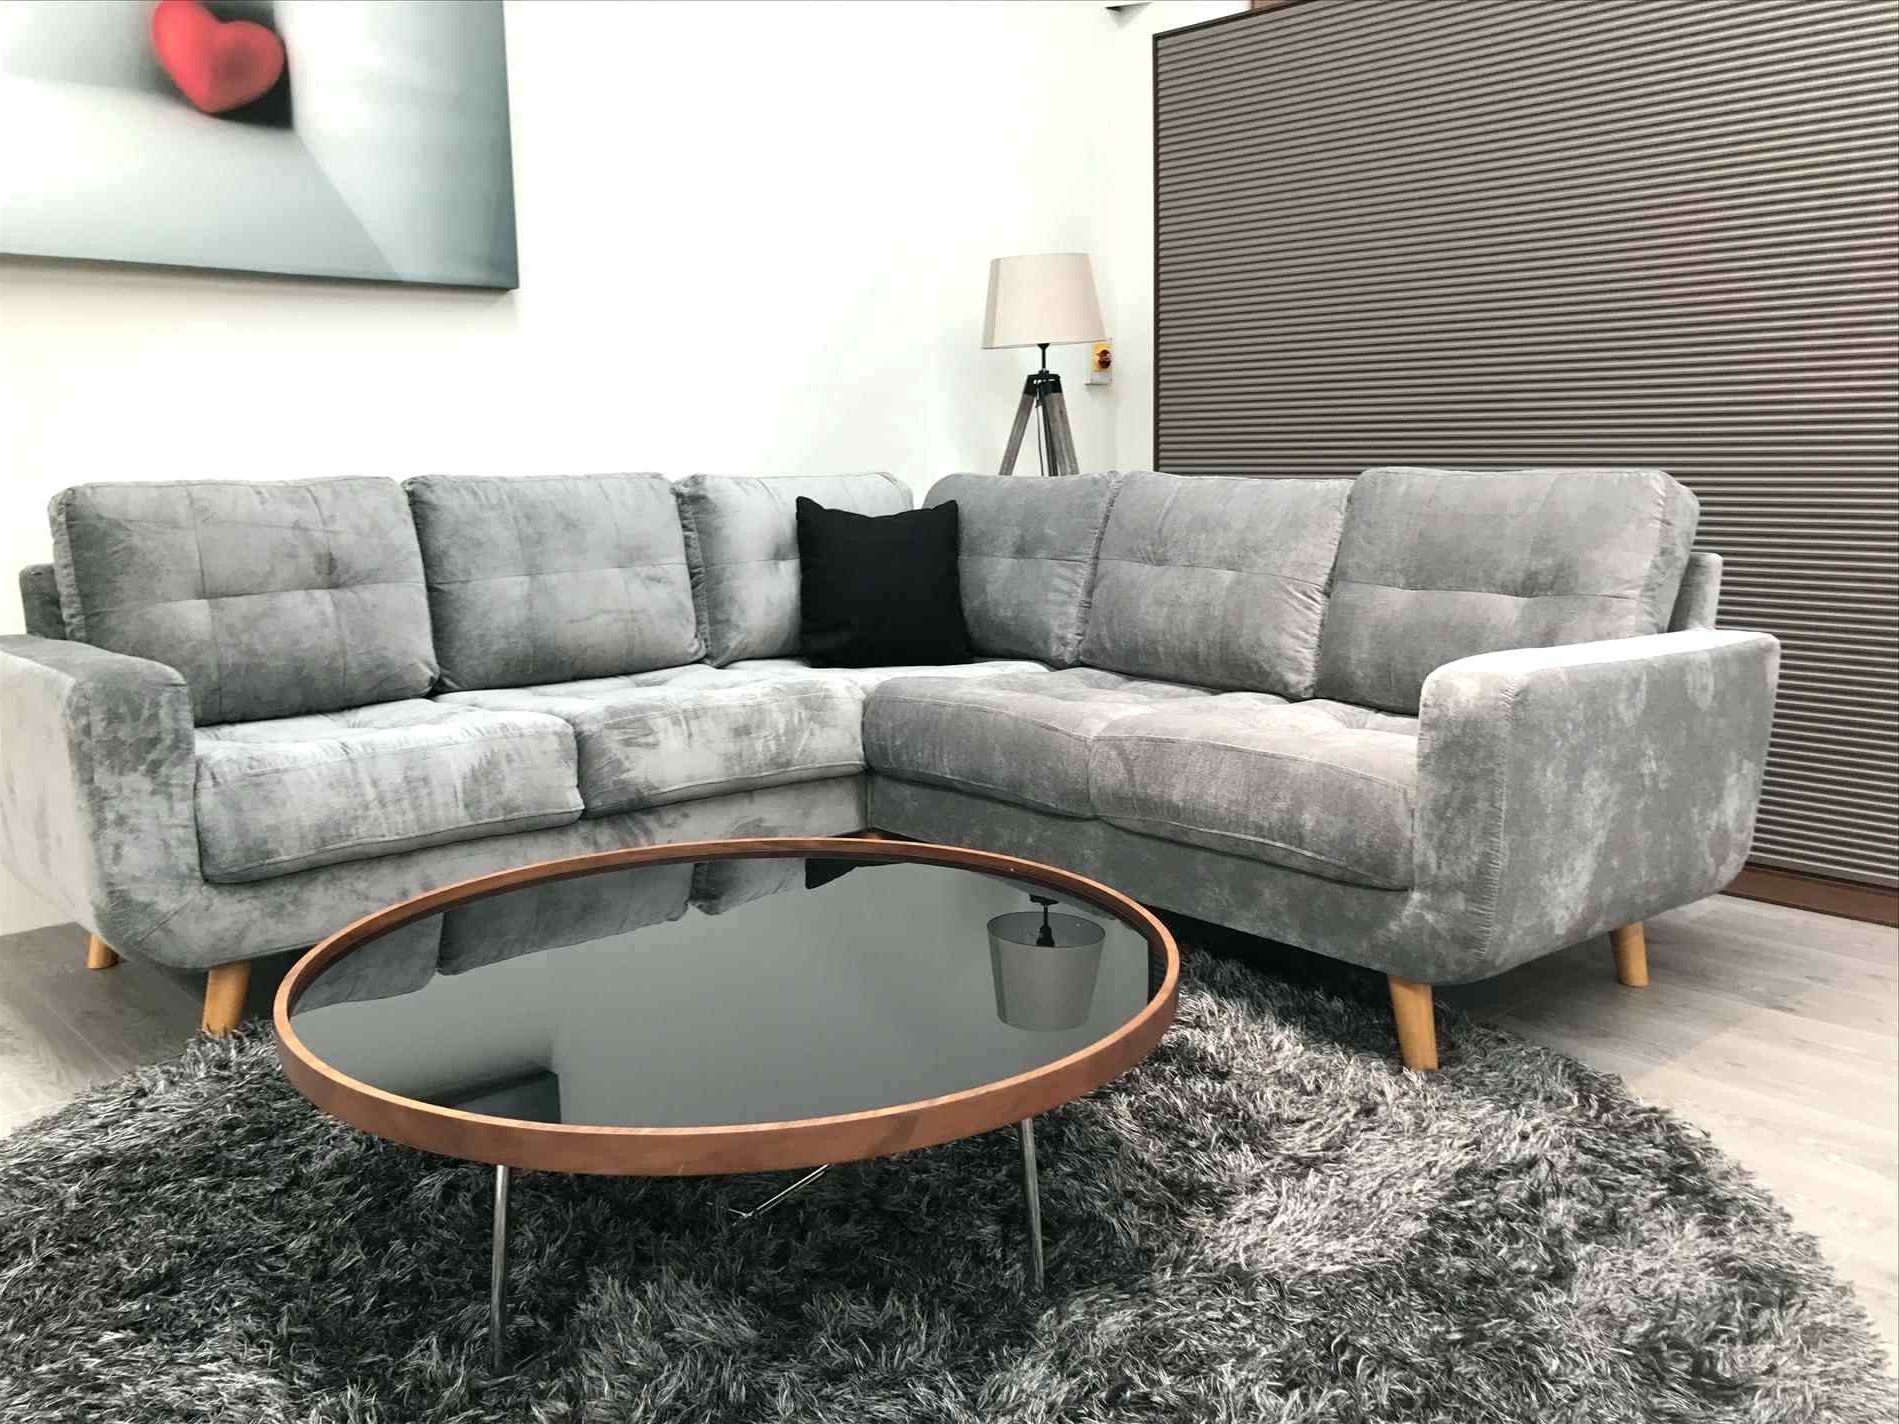 Outlet sofas Online Mndw Carino Tienda sofas Online Outlet Bryden sofa Slate by Factory